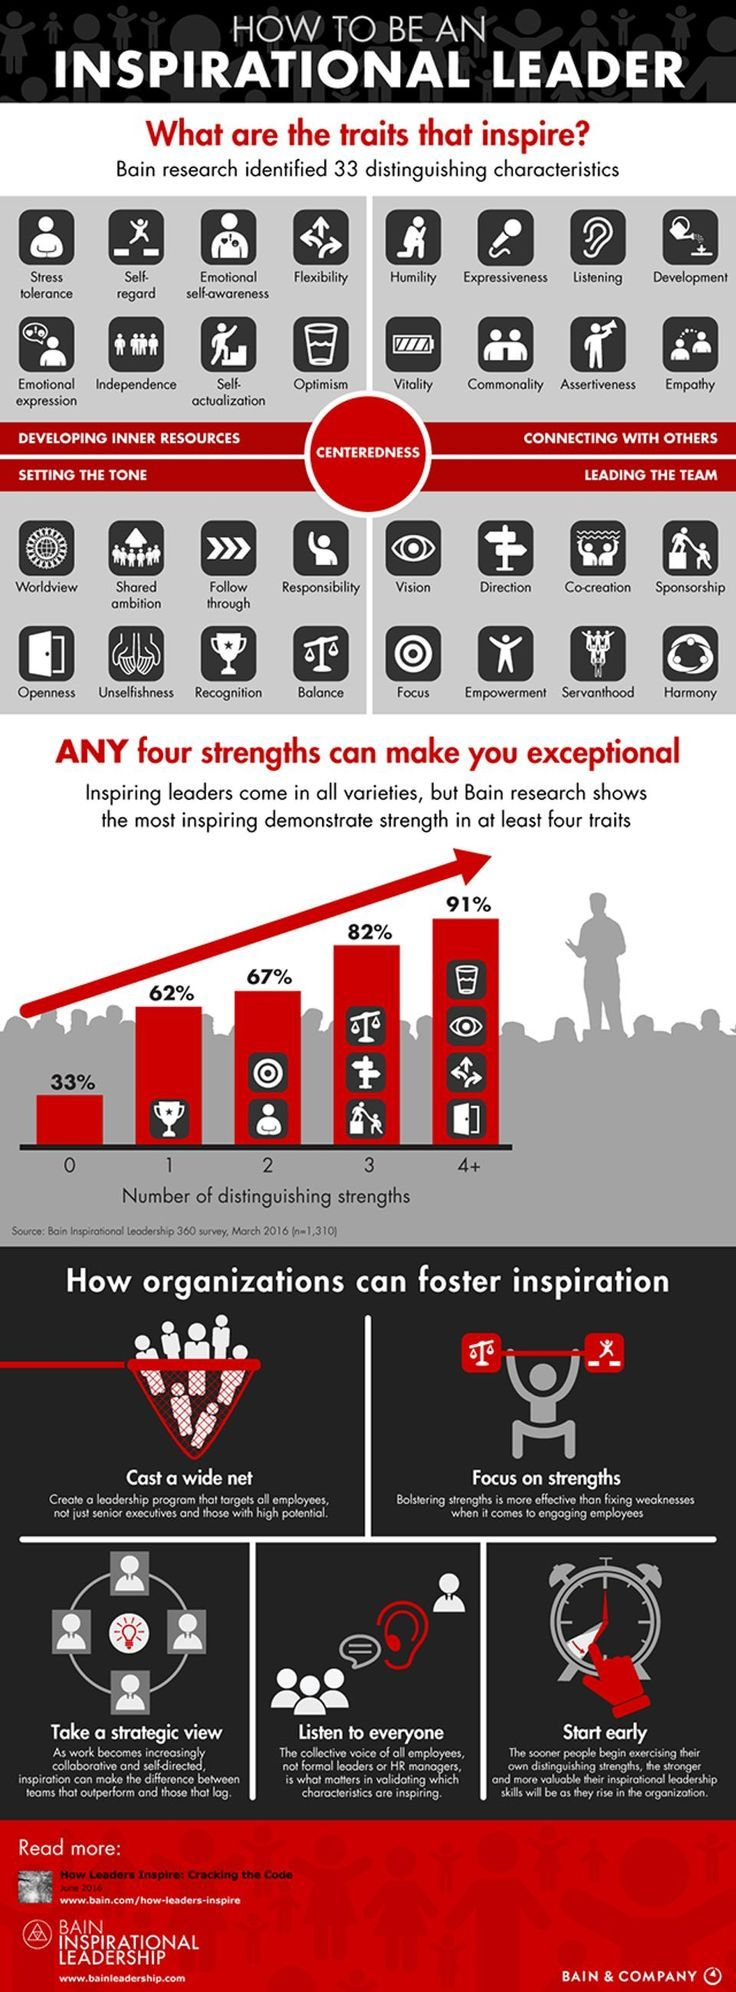 How to be an inspirational leader httpitz mycom